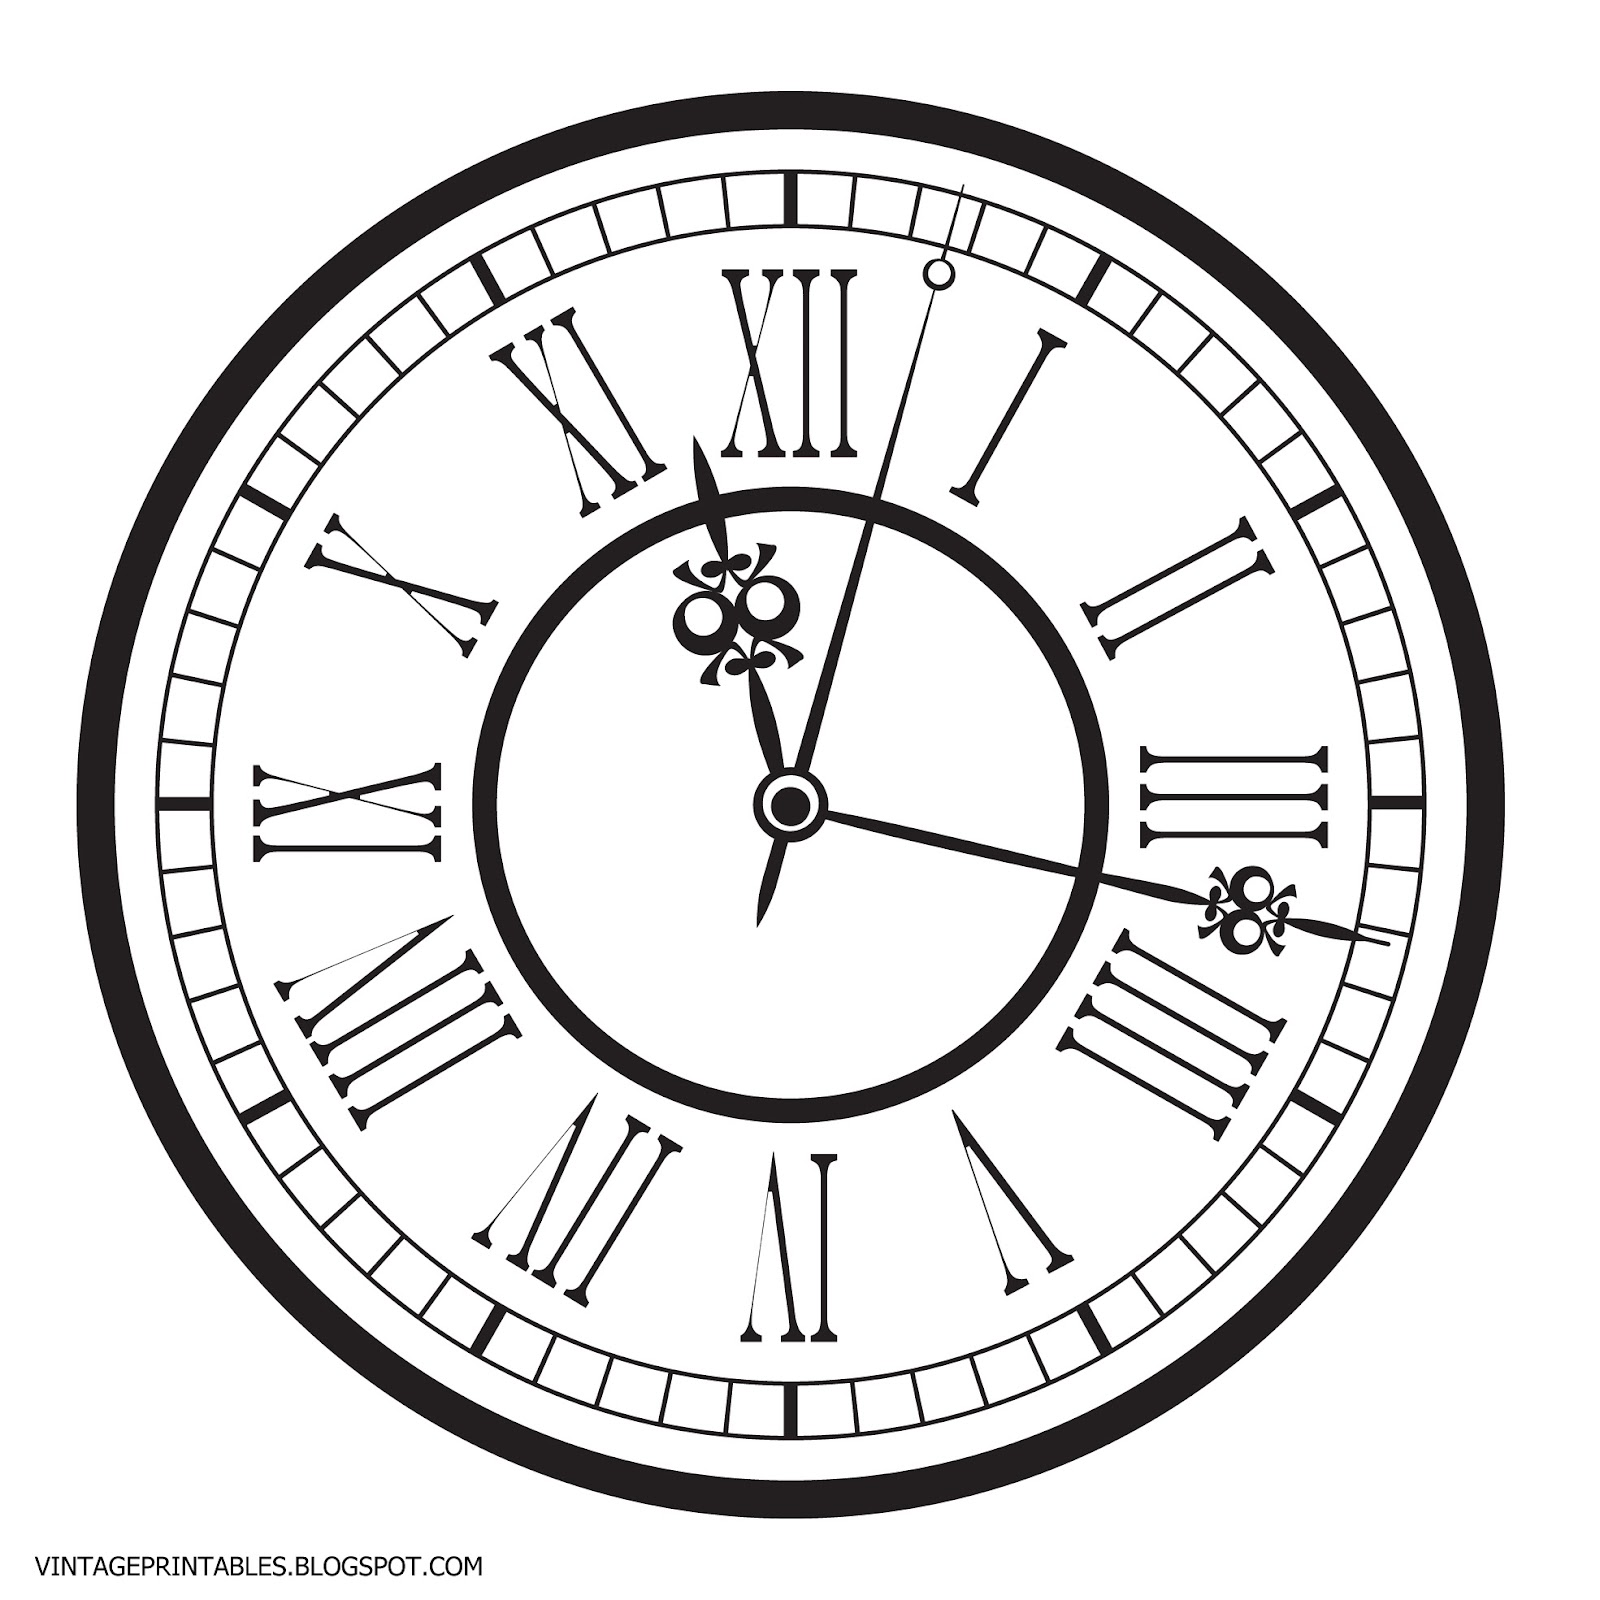 Old Antique Clock Free Clip Art in addition Machinery Vector Pack also 382594930822900765 together with US20070127319 further Free Vintage Printable Blueprints Diagrams. on steampunk gears drawings